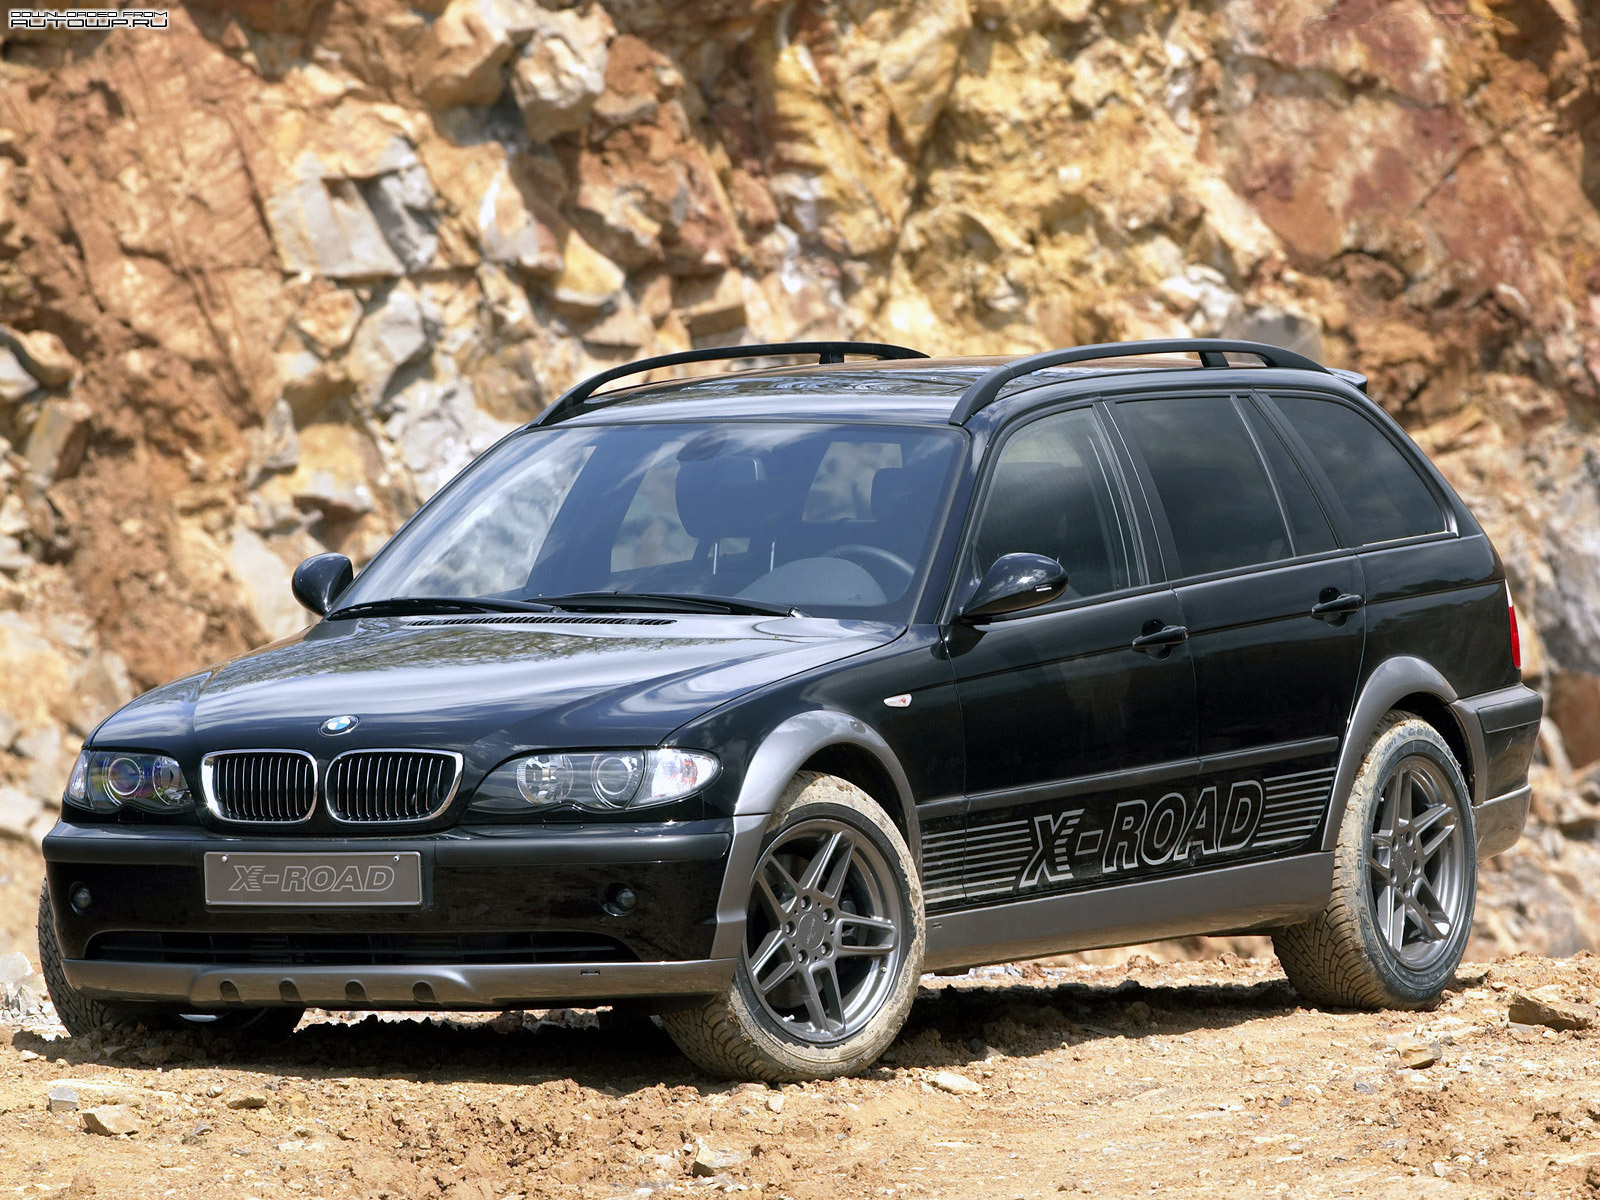 AC Schnitzer X-Road Concept (E46) photo 59430